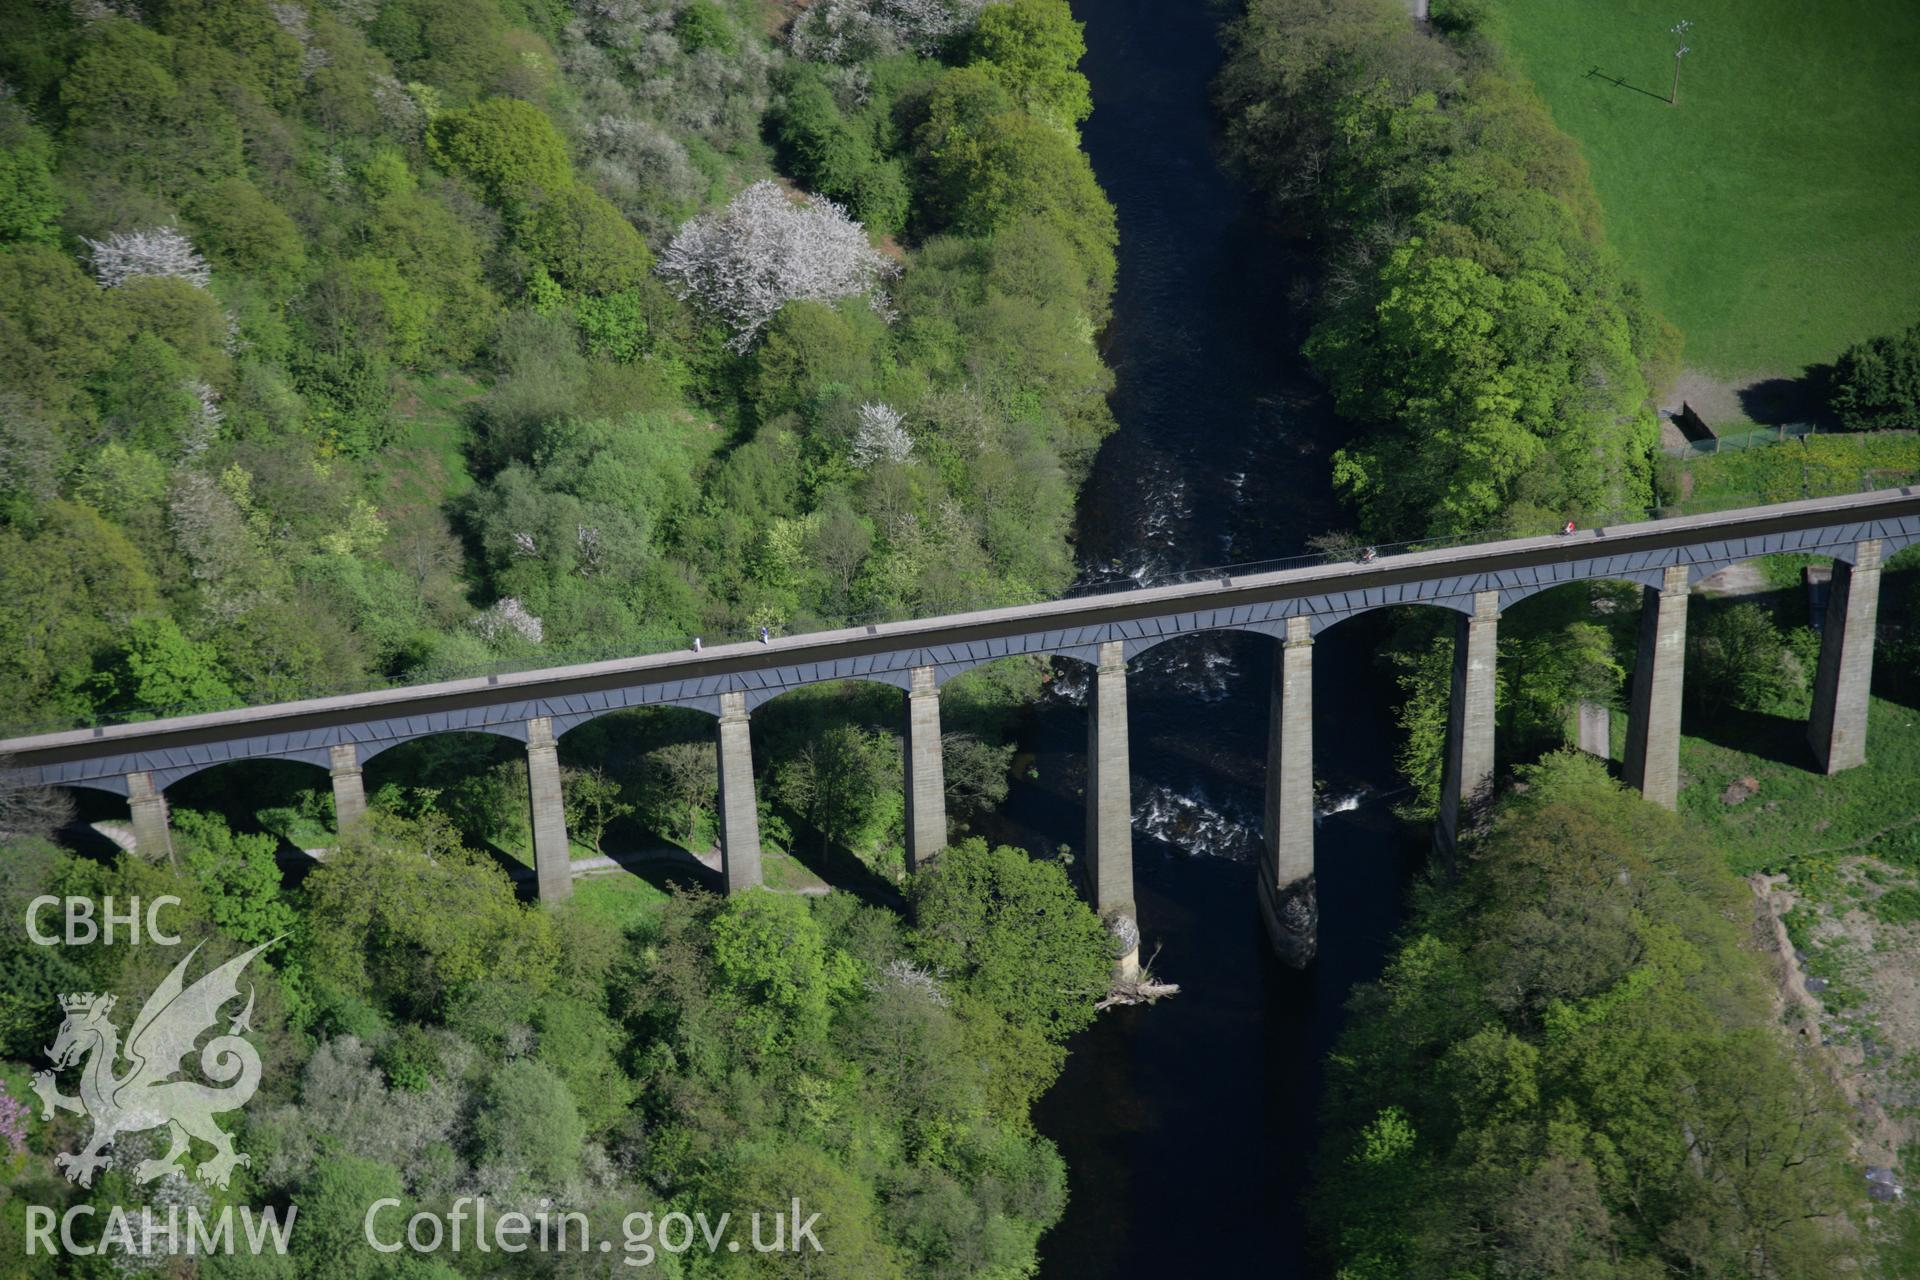 RCAHMW digital colour oblique photograph of Pontcysyllte Aqueduct from the west. Taken on 05/05/2006 by T.G. Driver.